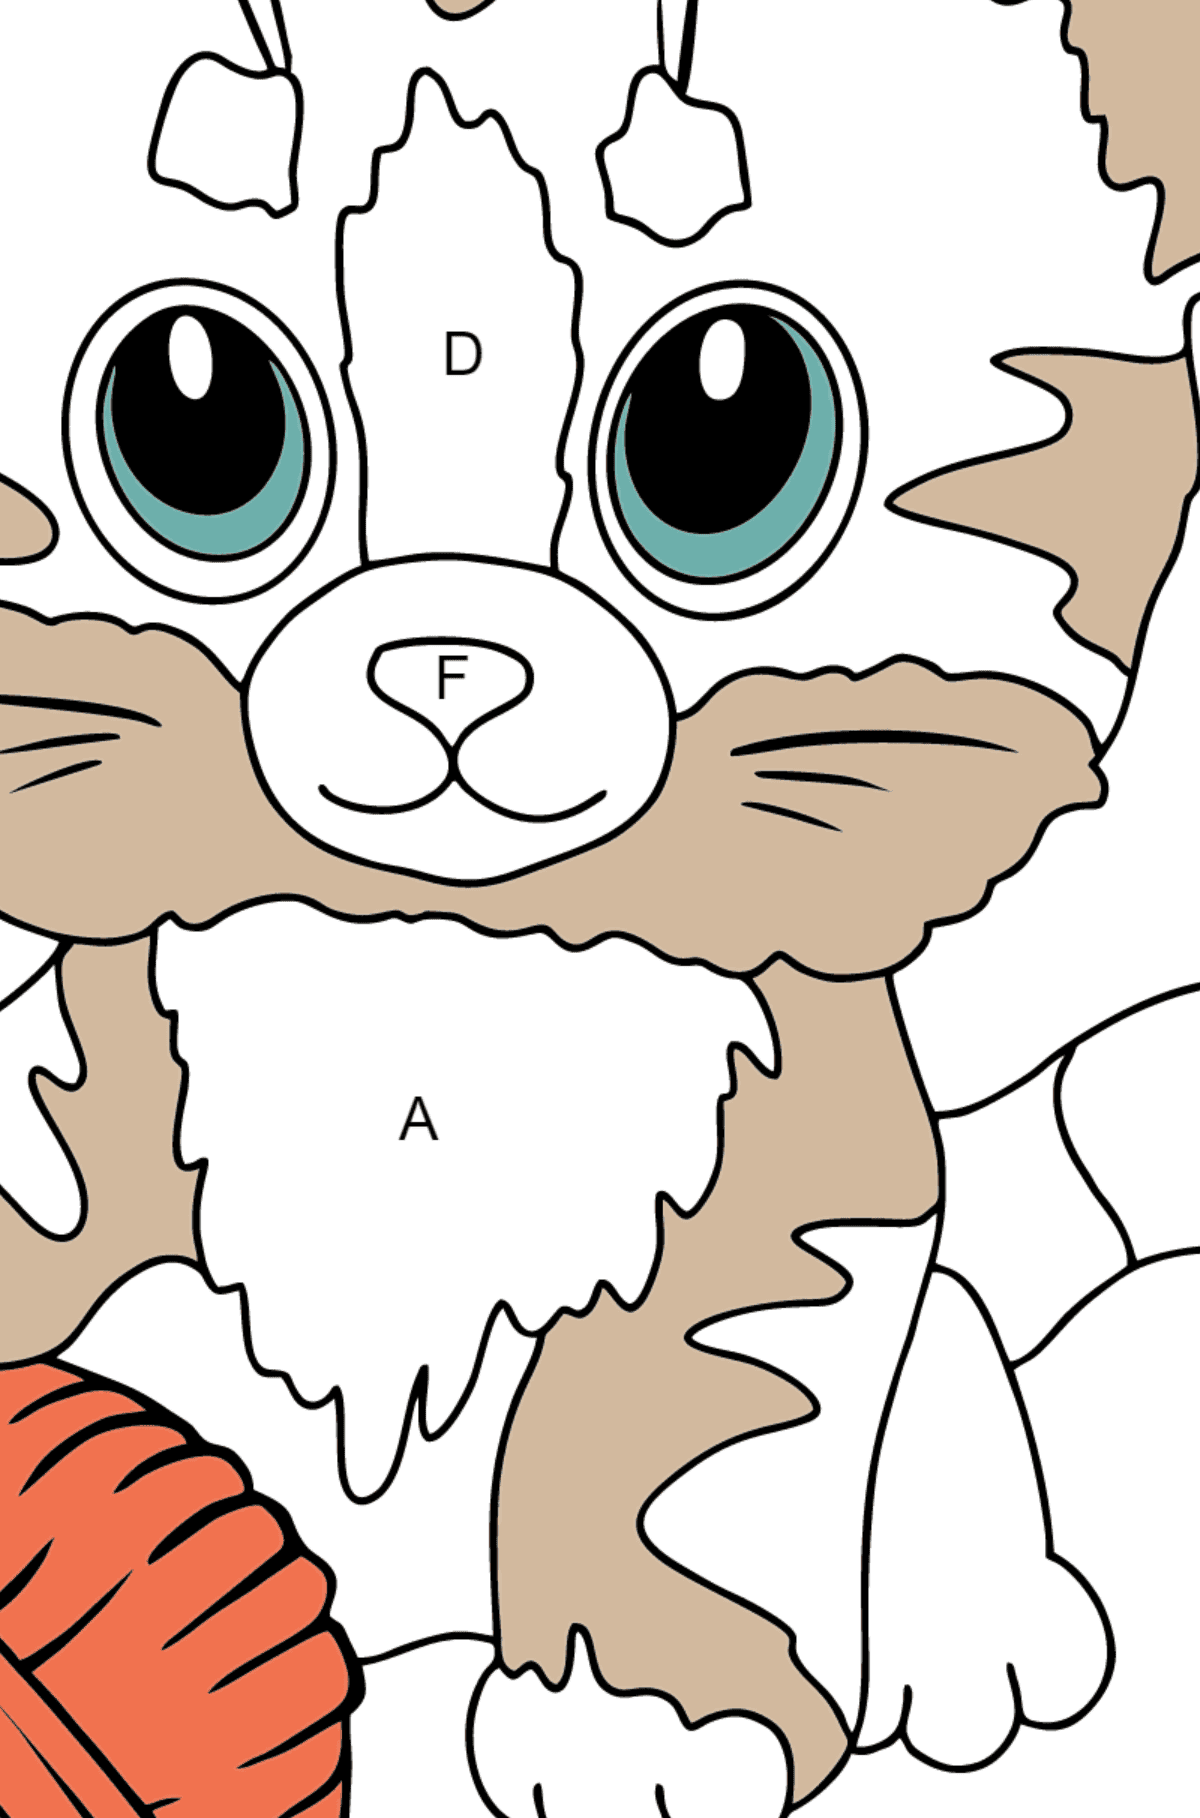 Coloring Page - a Kitten has Caught a Ball of Yarn - Coloring by Letters for Children